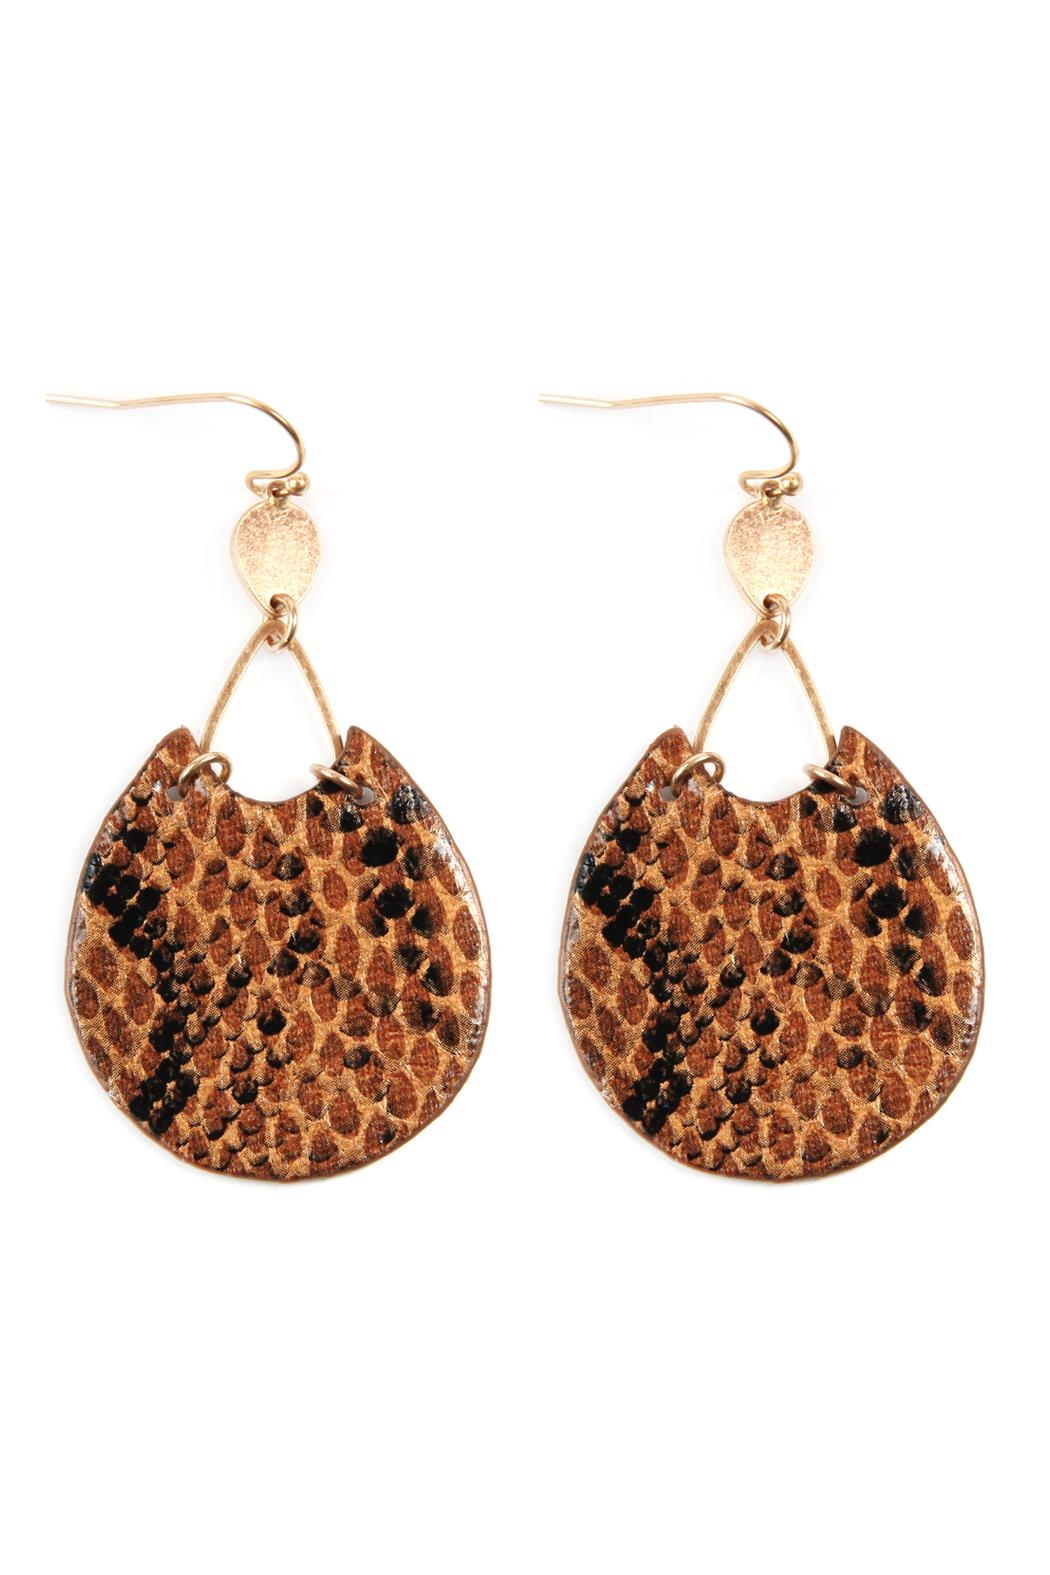 Riah Fashion Snake Print-Pu-Leather-Earrings - Front Cropped Image